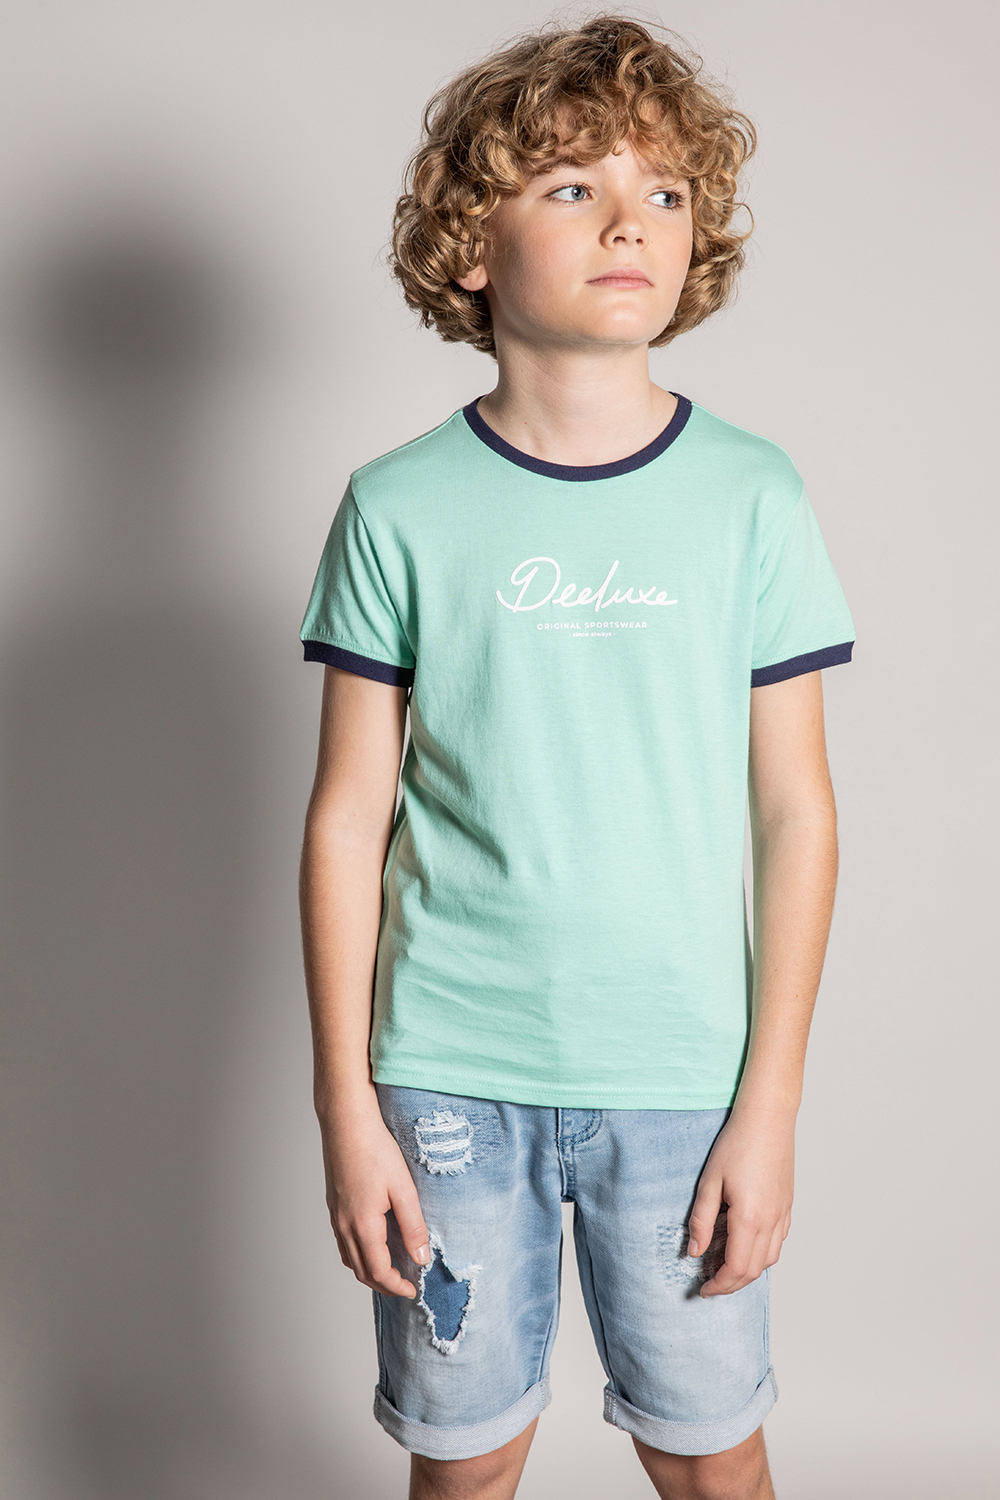 T-Shirt HYLTER - Couleur - Almond, Taille - 8